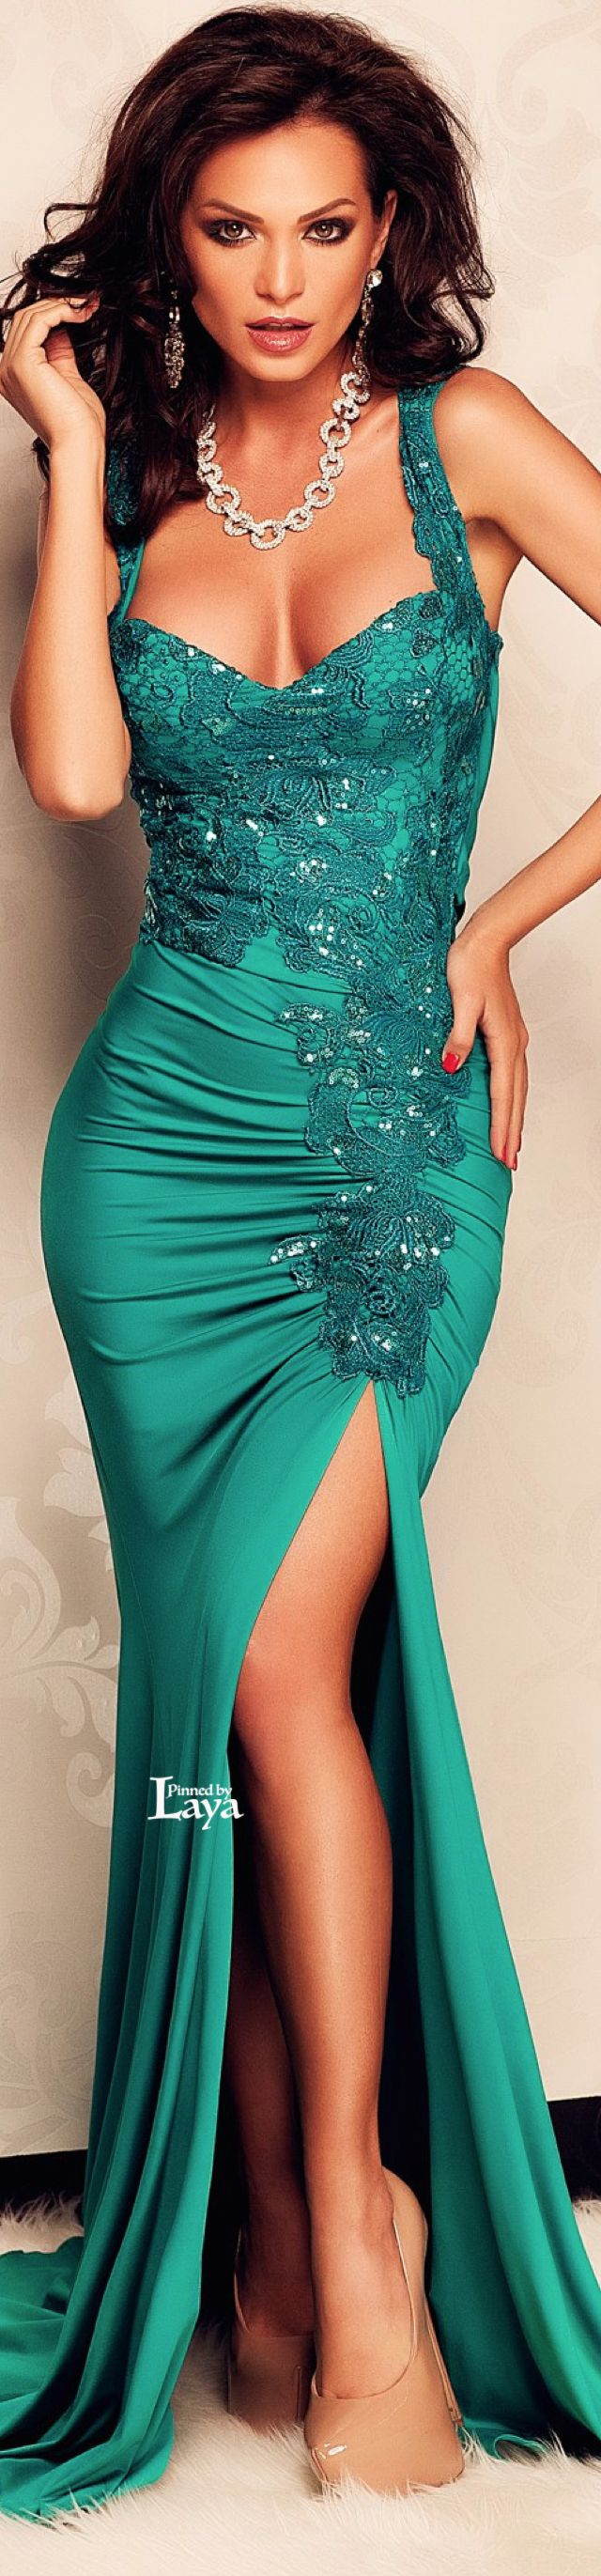 ♔LAYA♔ATMOSPHERE FASHION♔ | sexy and curvy | luxury that catches her elegant style and expresses her sexy attitude | the lady in teal green gown | Bordering between green and blue is teal. Uplifting, energetic and chic, teal has the earthy quality of green combined with the lofty nature of blue making it a perfect color choice for people who are down to earth yet sophisticated in style | fashion designer diamonds necklace and earrings | #thejewelryhut